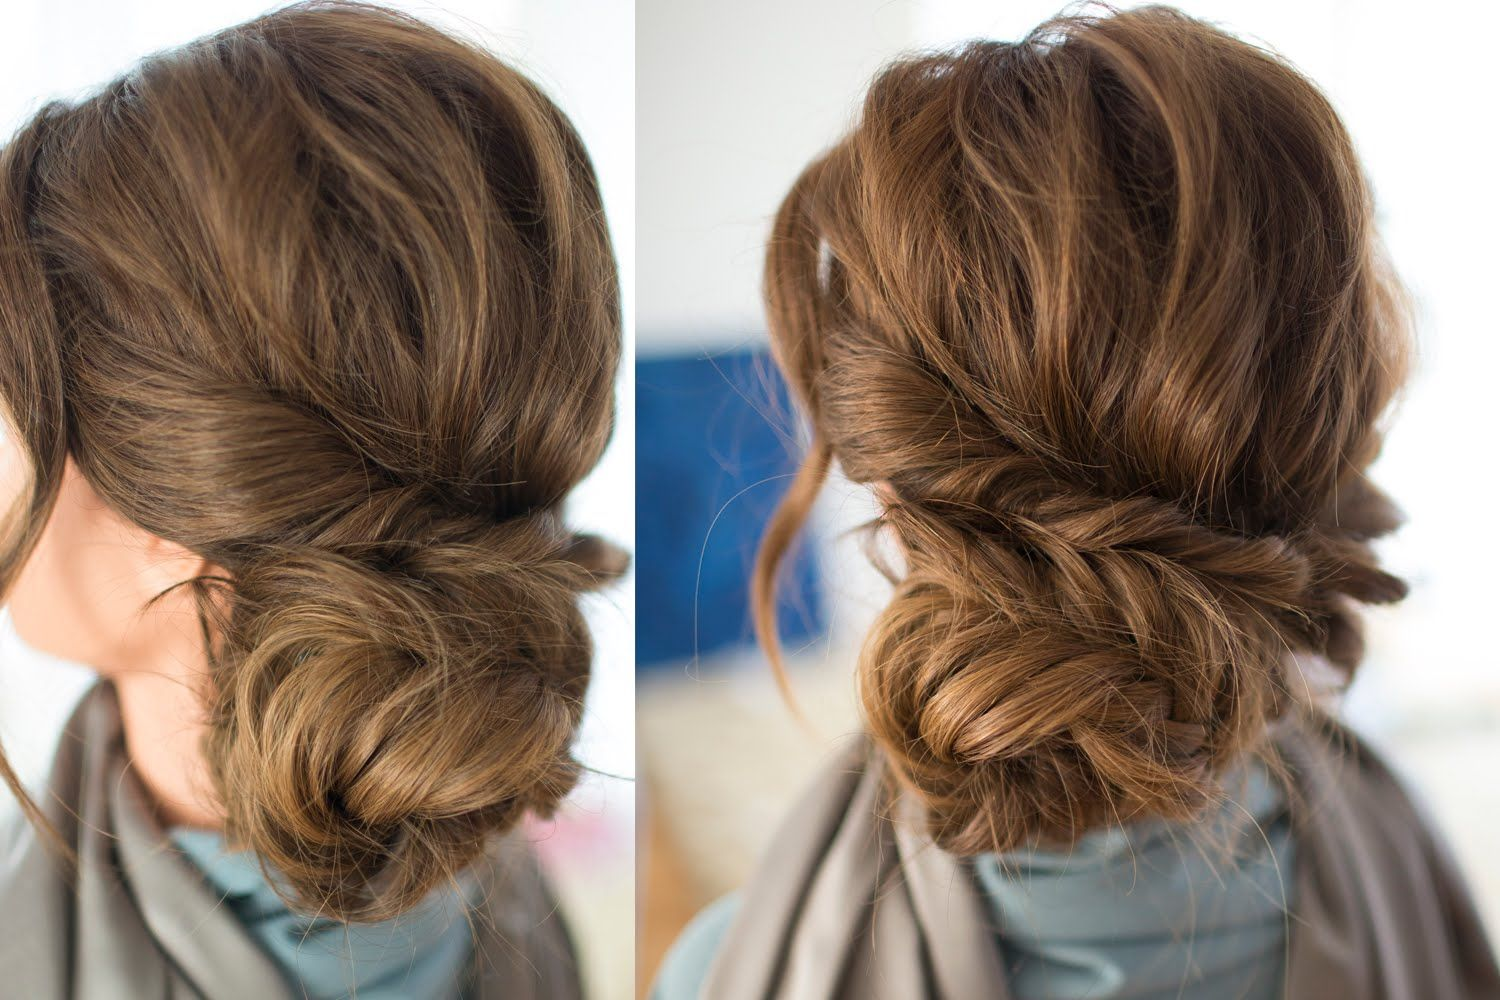 Braided Side Updo Hair Tutorial Using Clip In Hair Extensions In The